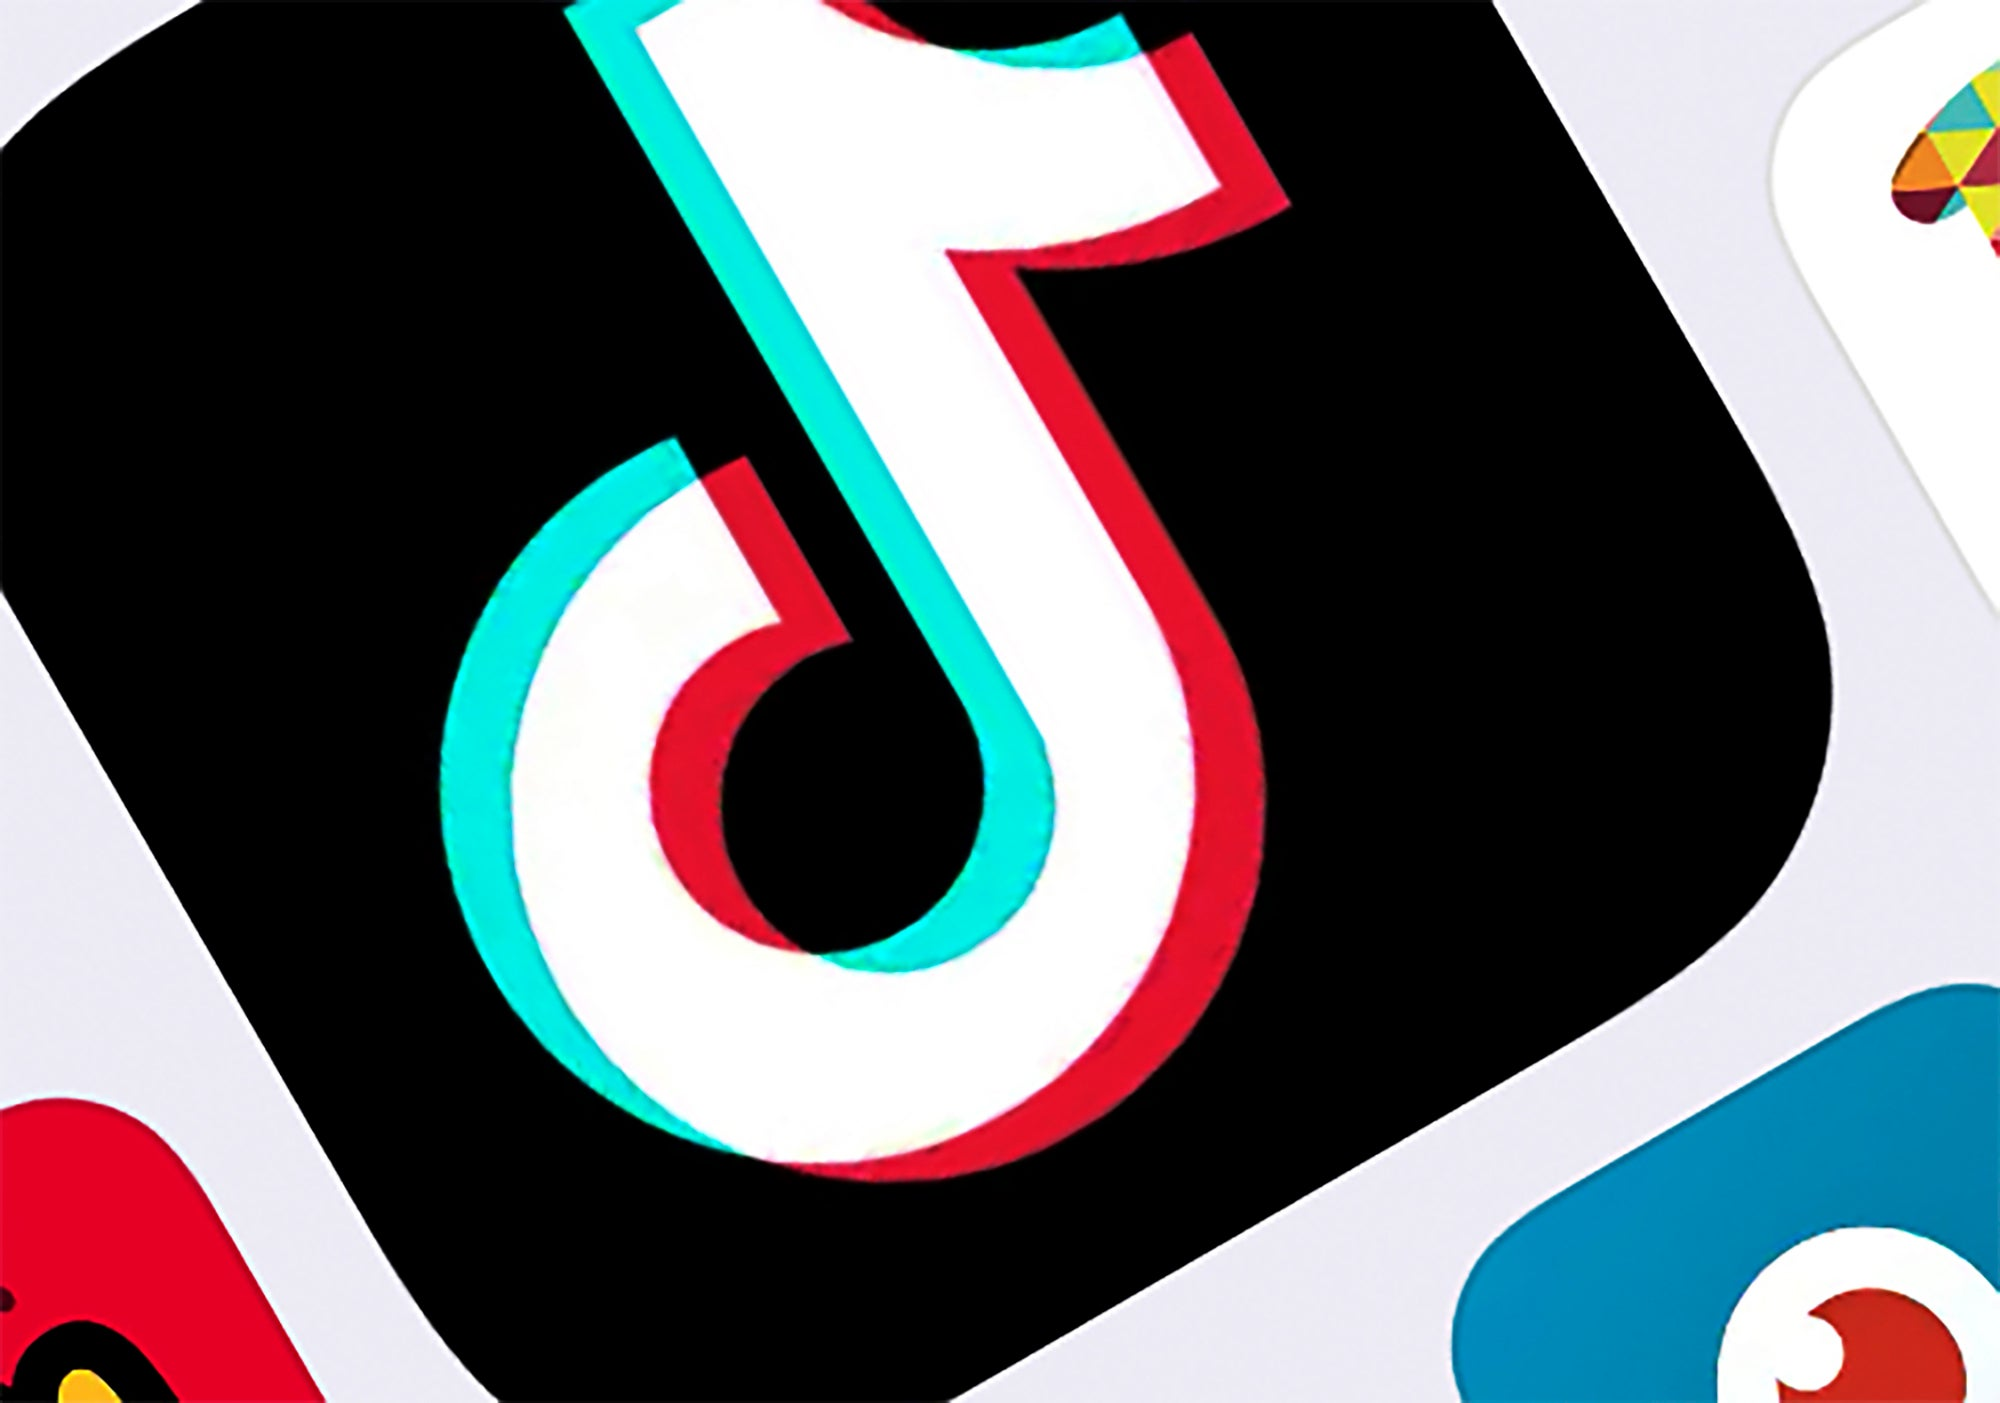 TikTok fate in the balance as judge weighs app store ban U.S. Lawyers TikTok threat Oracle